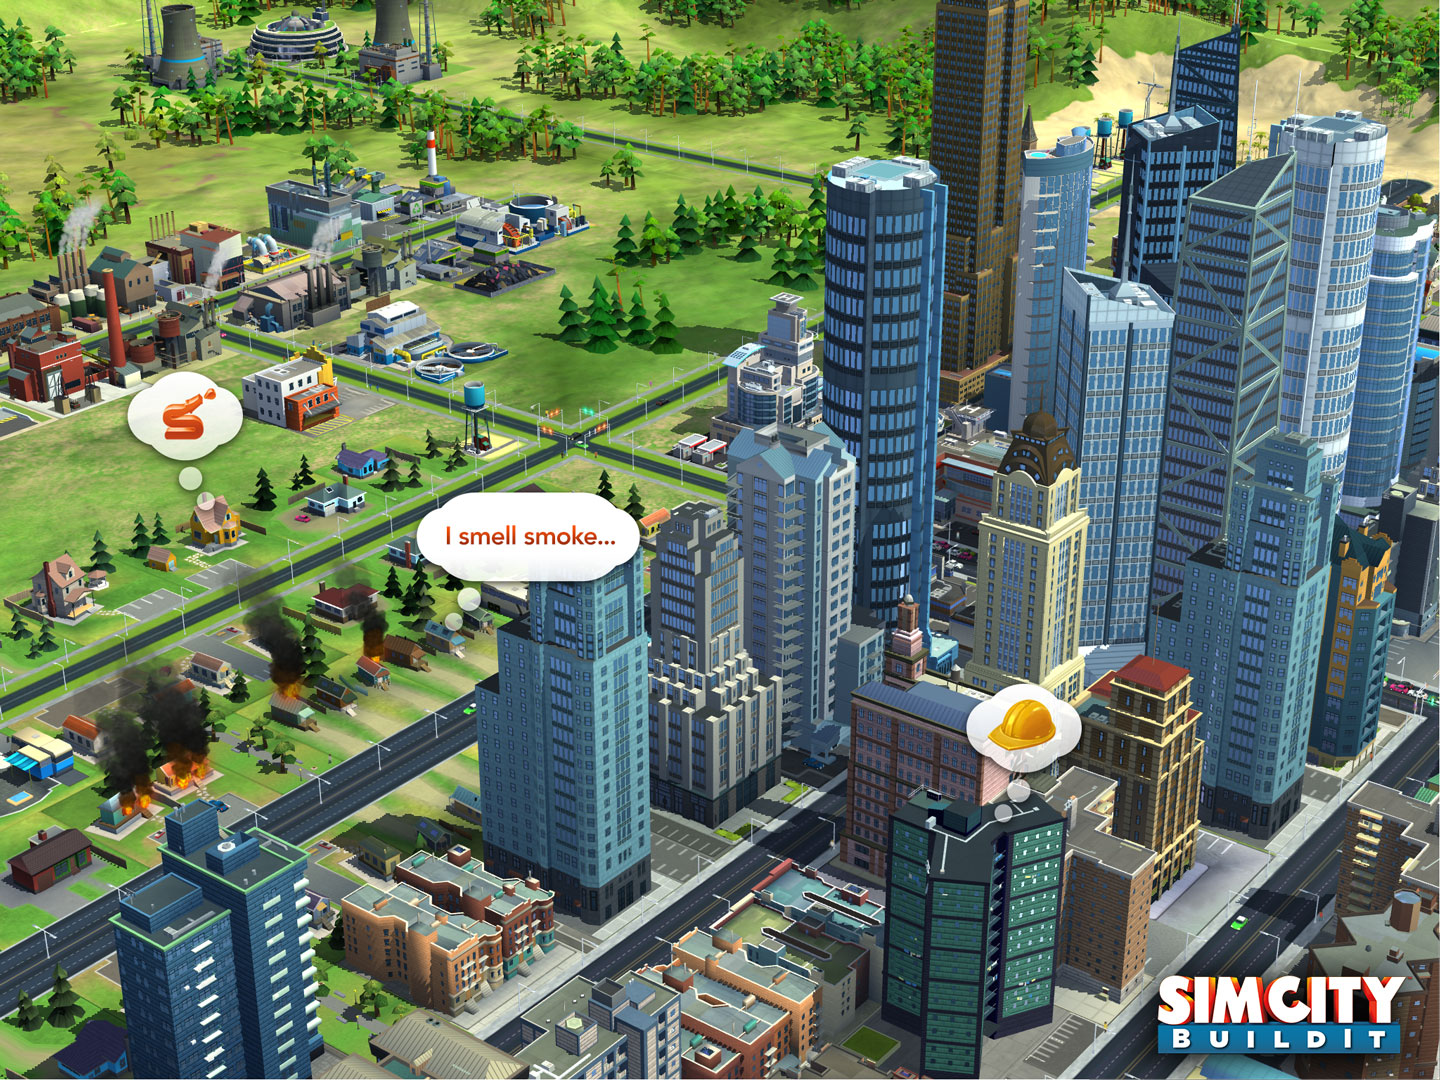 SimCity BuildIt (captura de pantalla 003 del iPad)